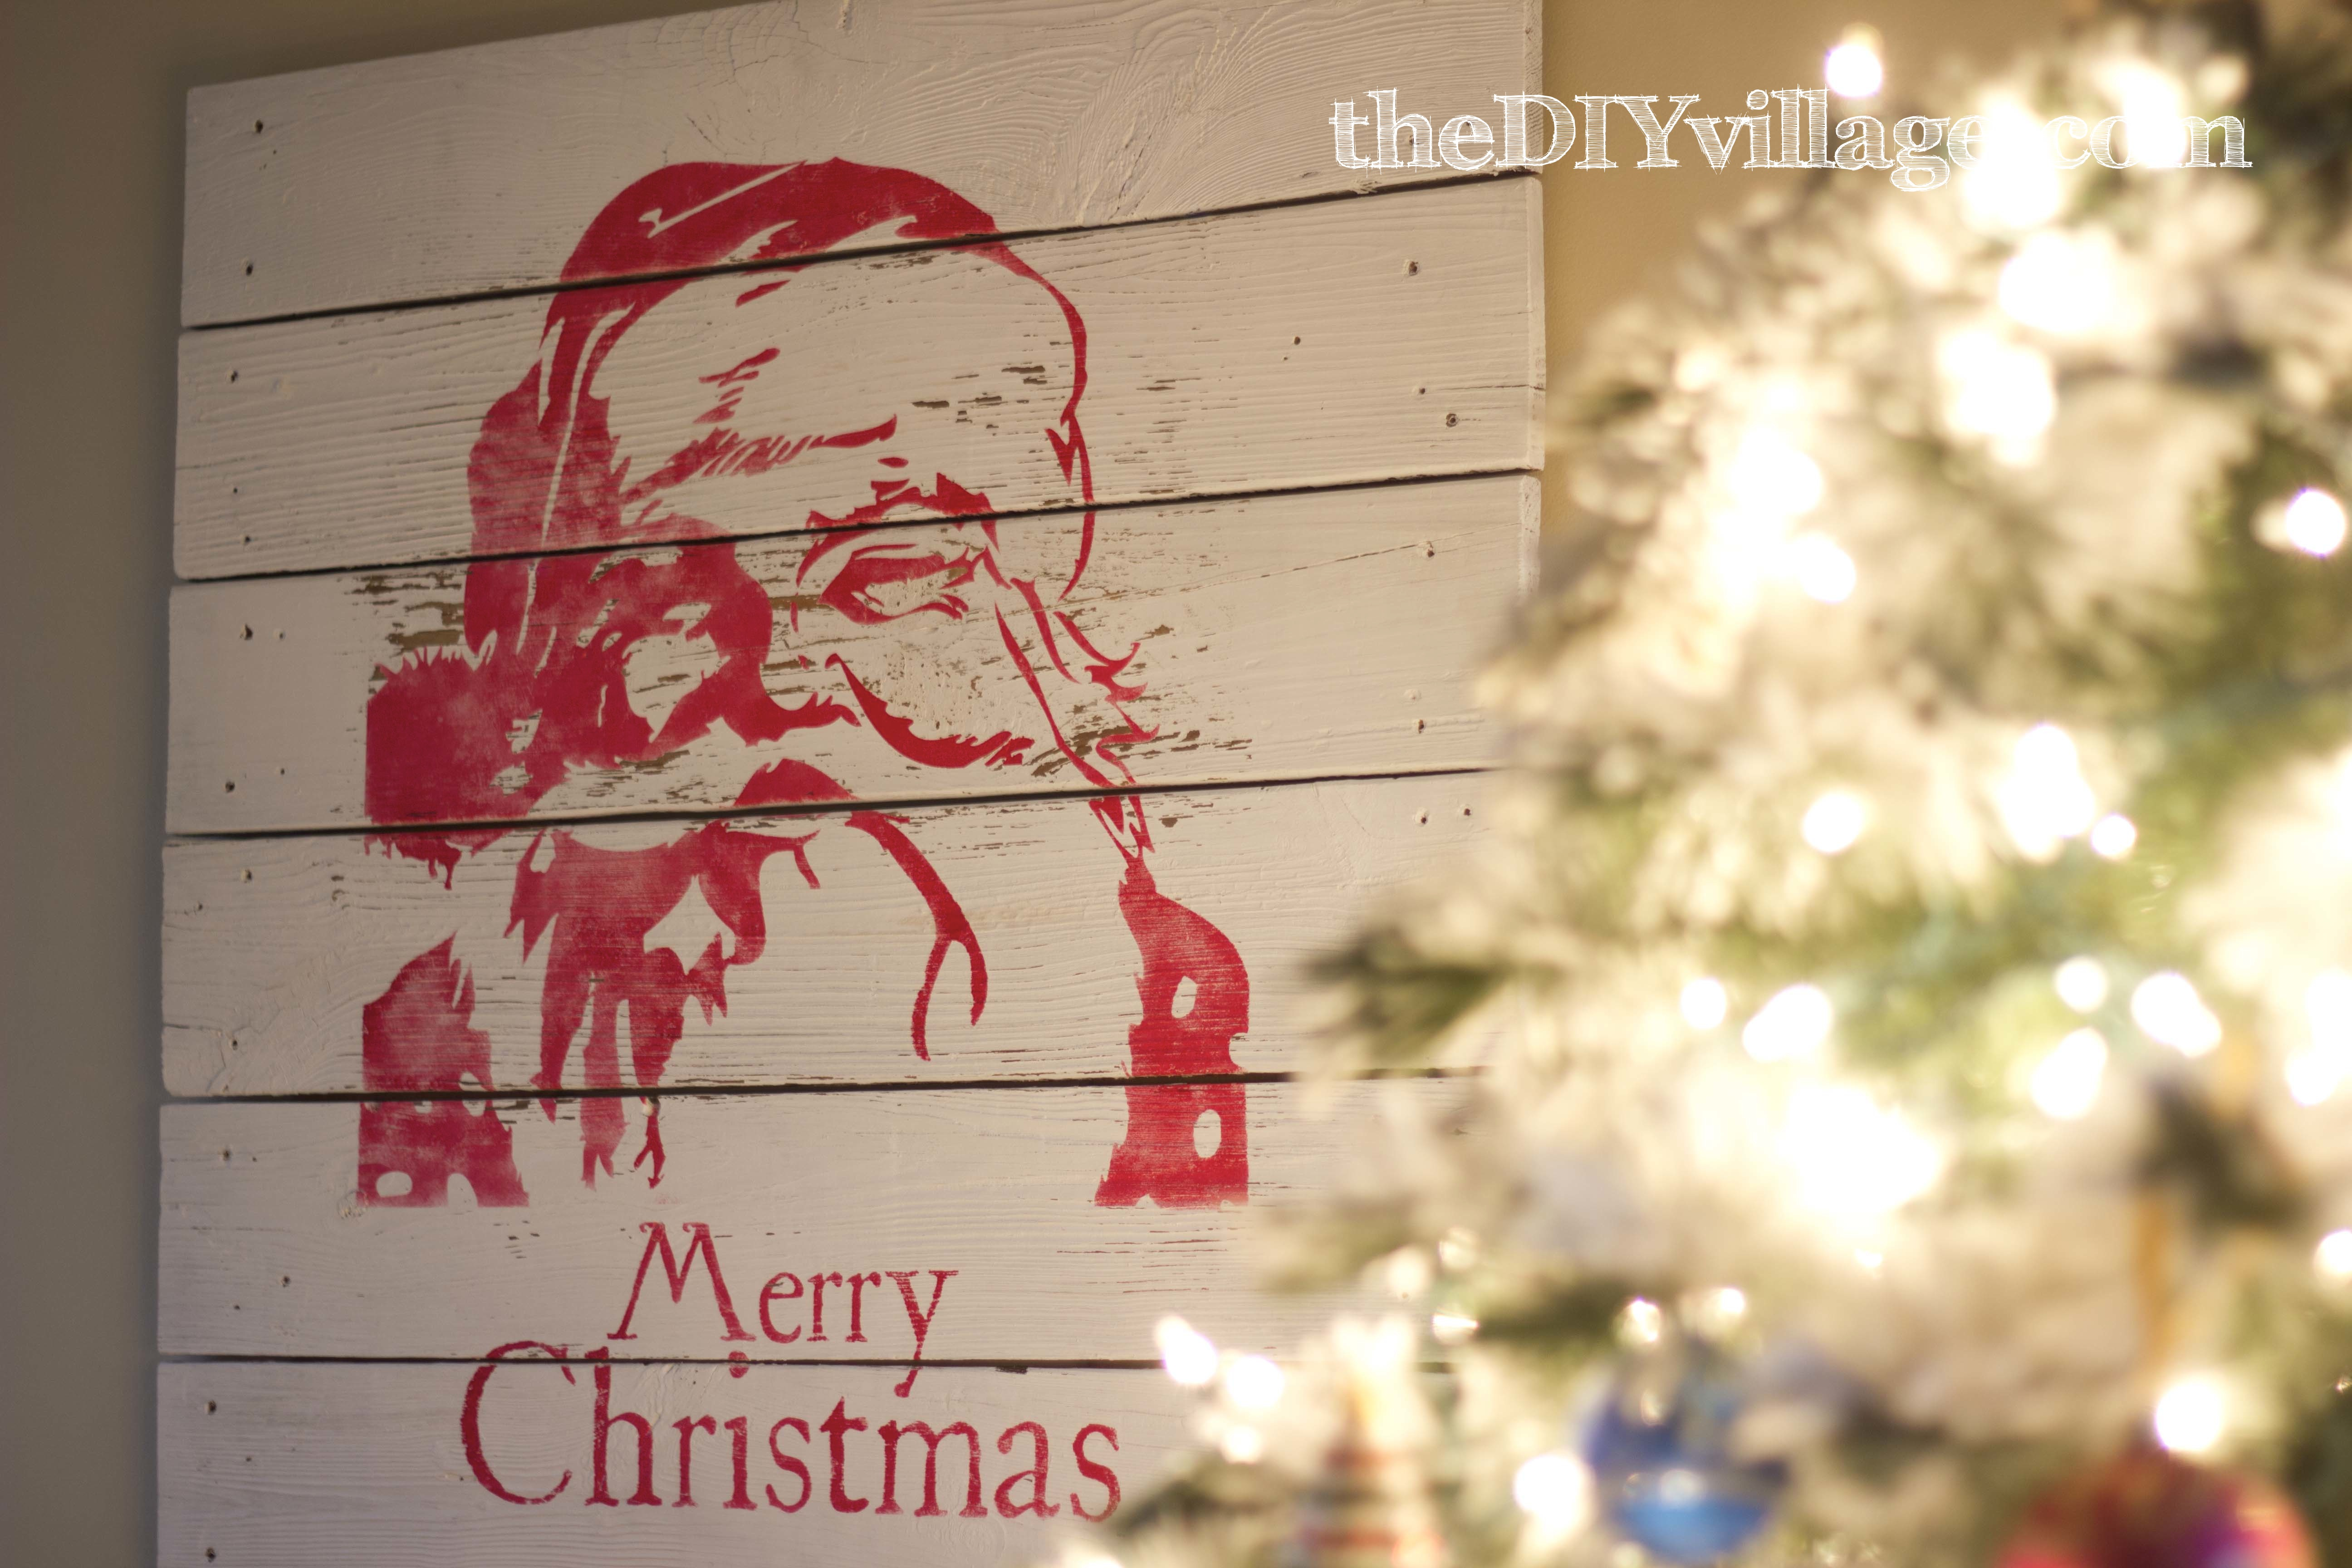 Pottery Barn Inspired Santa Artwork by the DIY Village